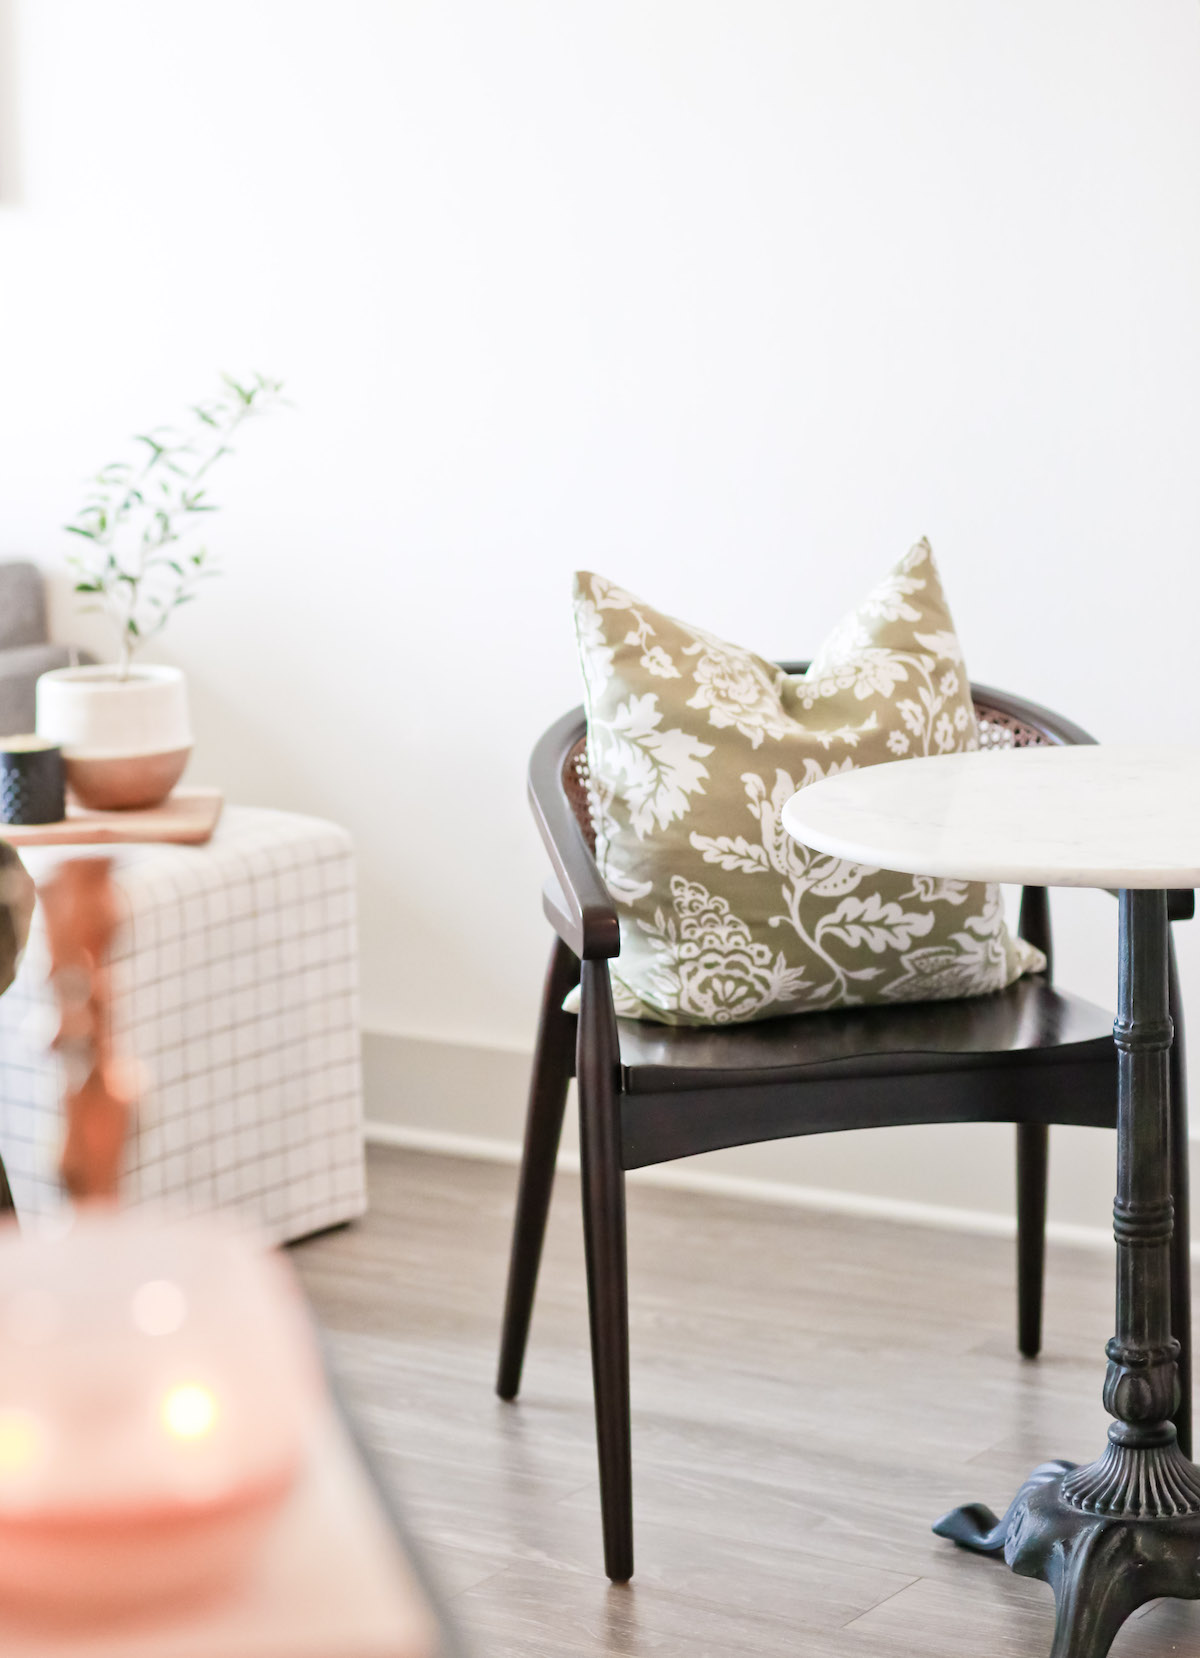 Chair with pillow on it at small table in an elegantly decorated room. Get help navigating healthy boundaries in the workplace with codependency treatment in Miramar, FL for healthy boundaries with online therapy in Florida for women.